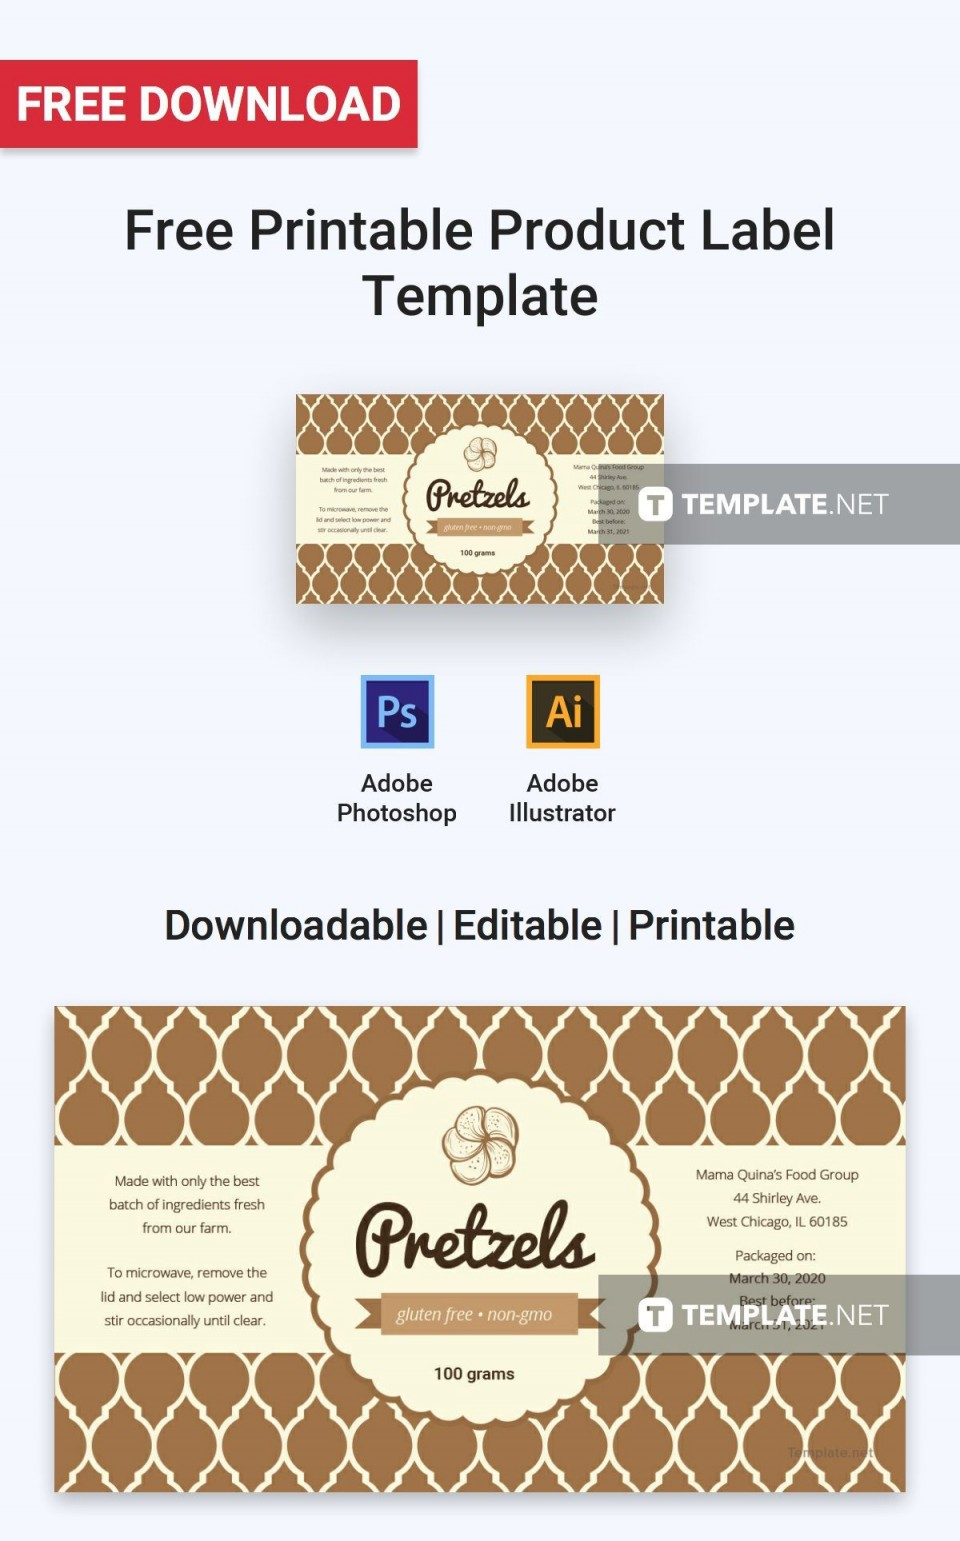 004 Sensational Microsoft Word Label Template Free Download Picture 960